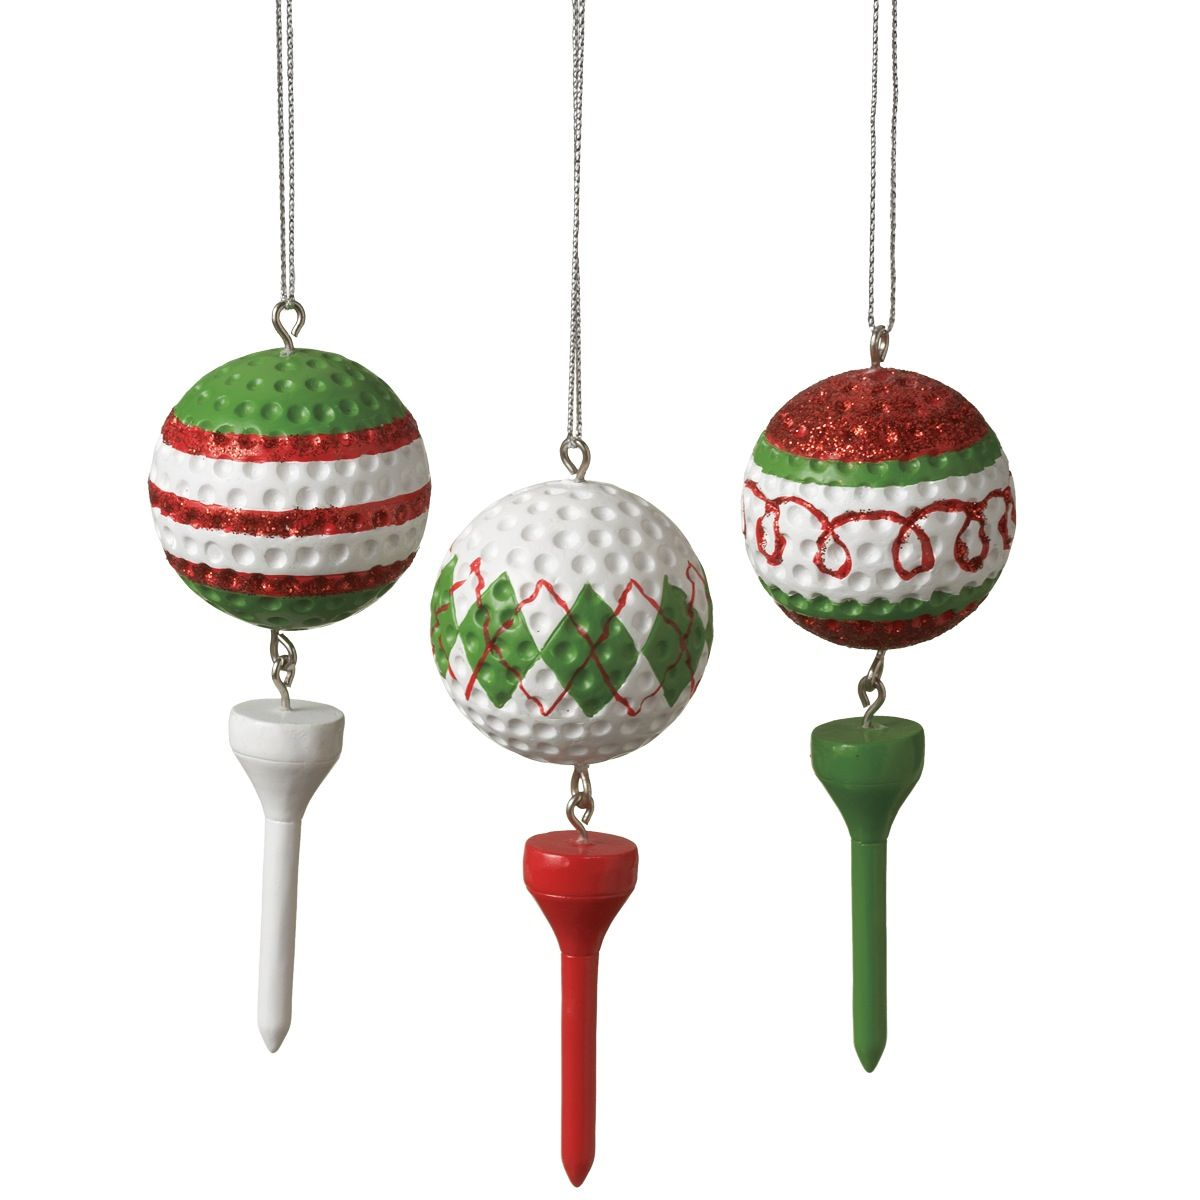 Decorated Christmas Balls: Golf Ball & Tee Ornaments …